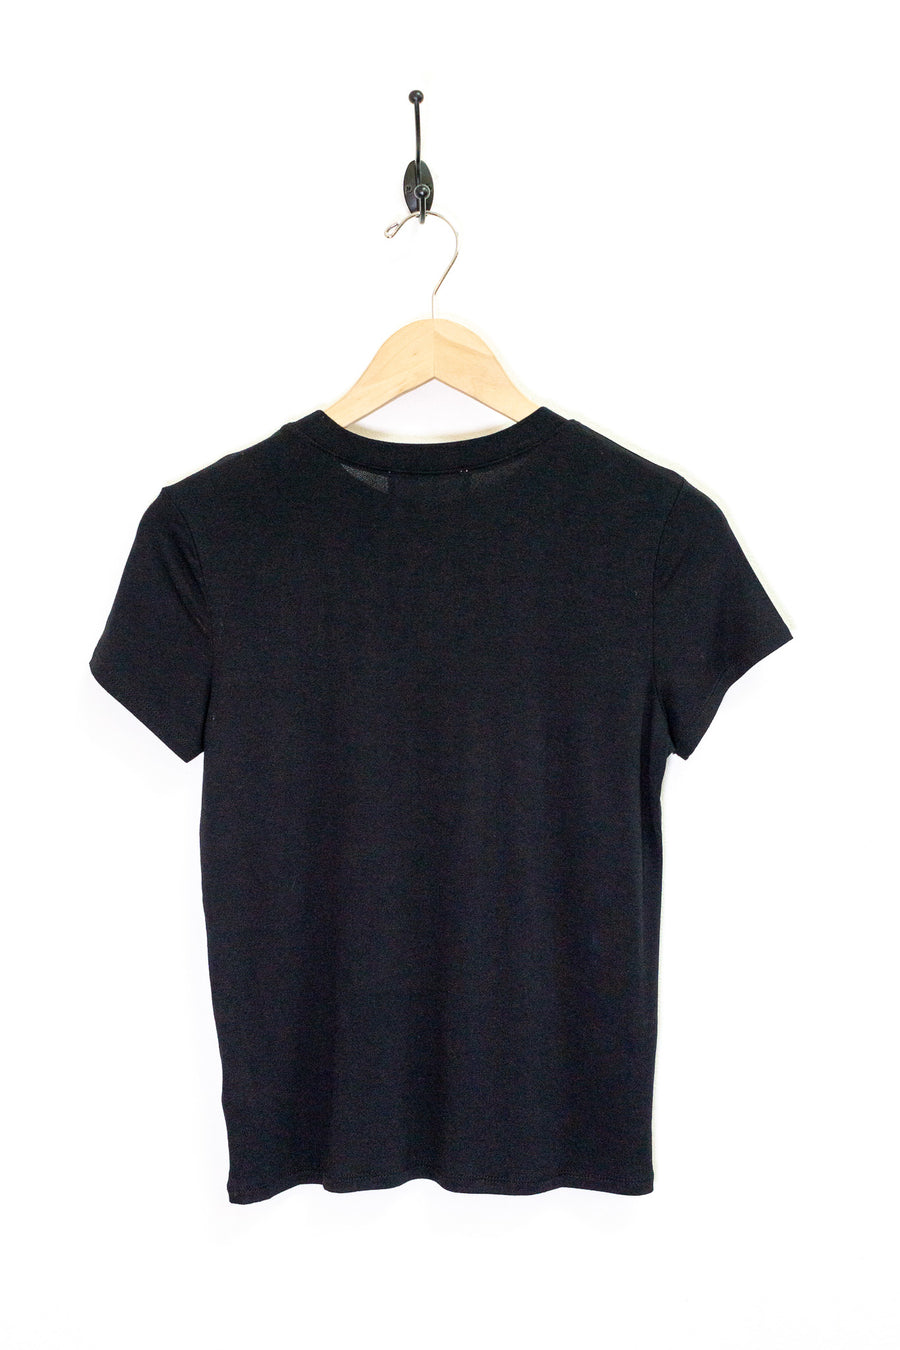 Crew Neck Crepe Tee - The Canyon